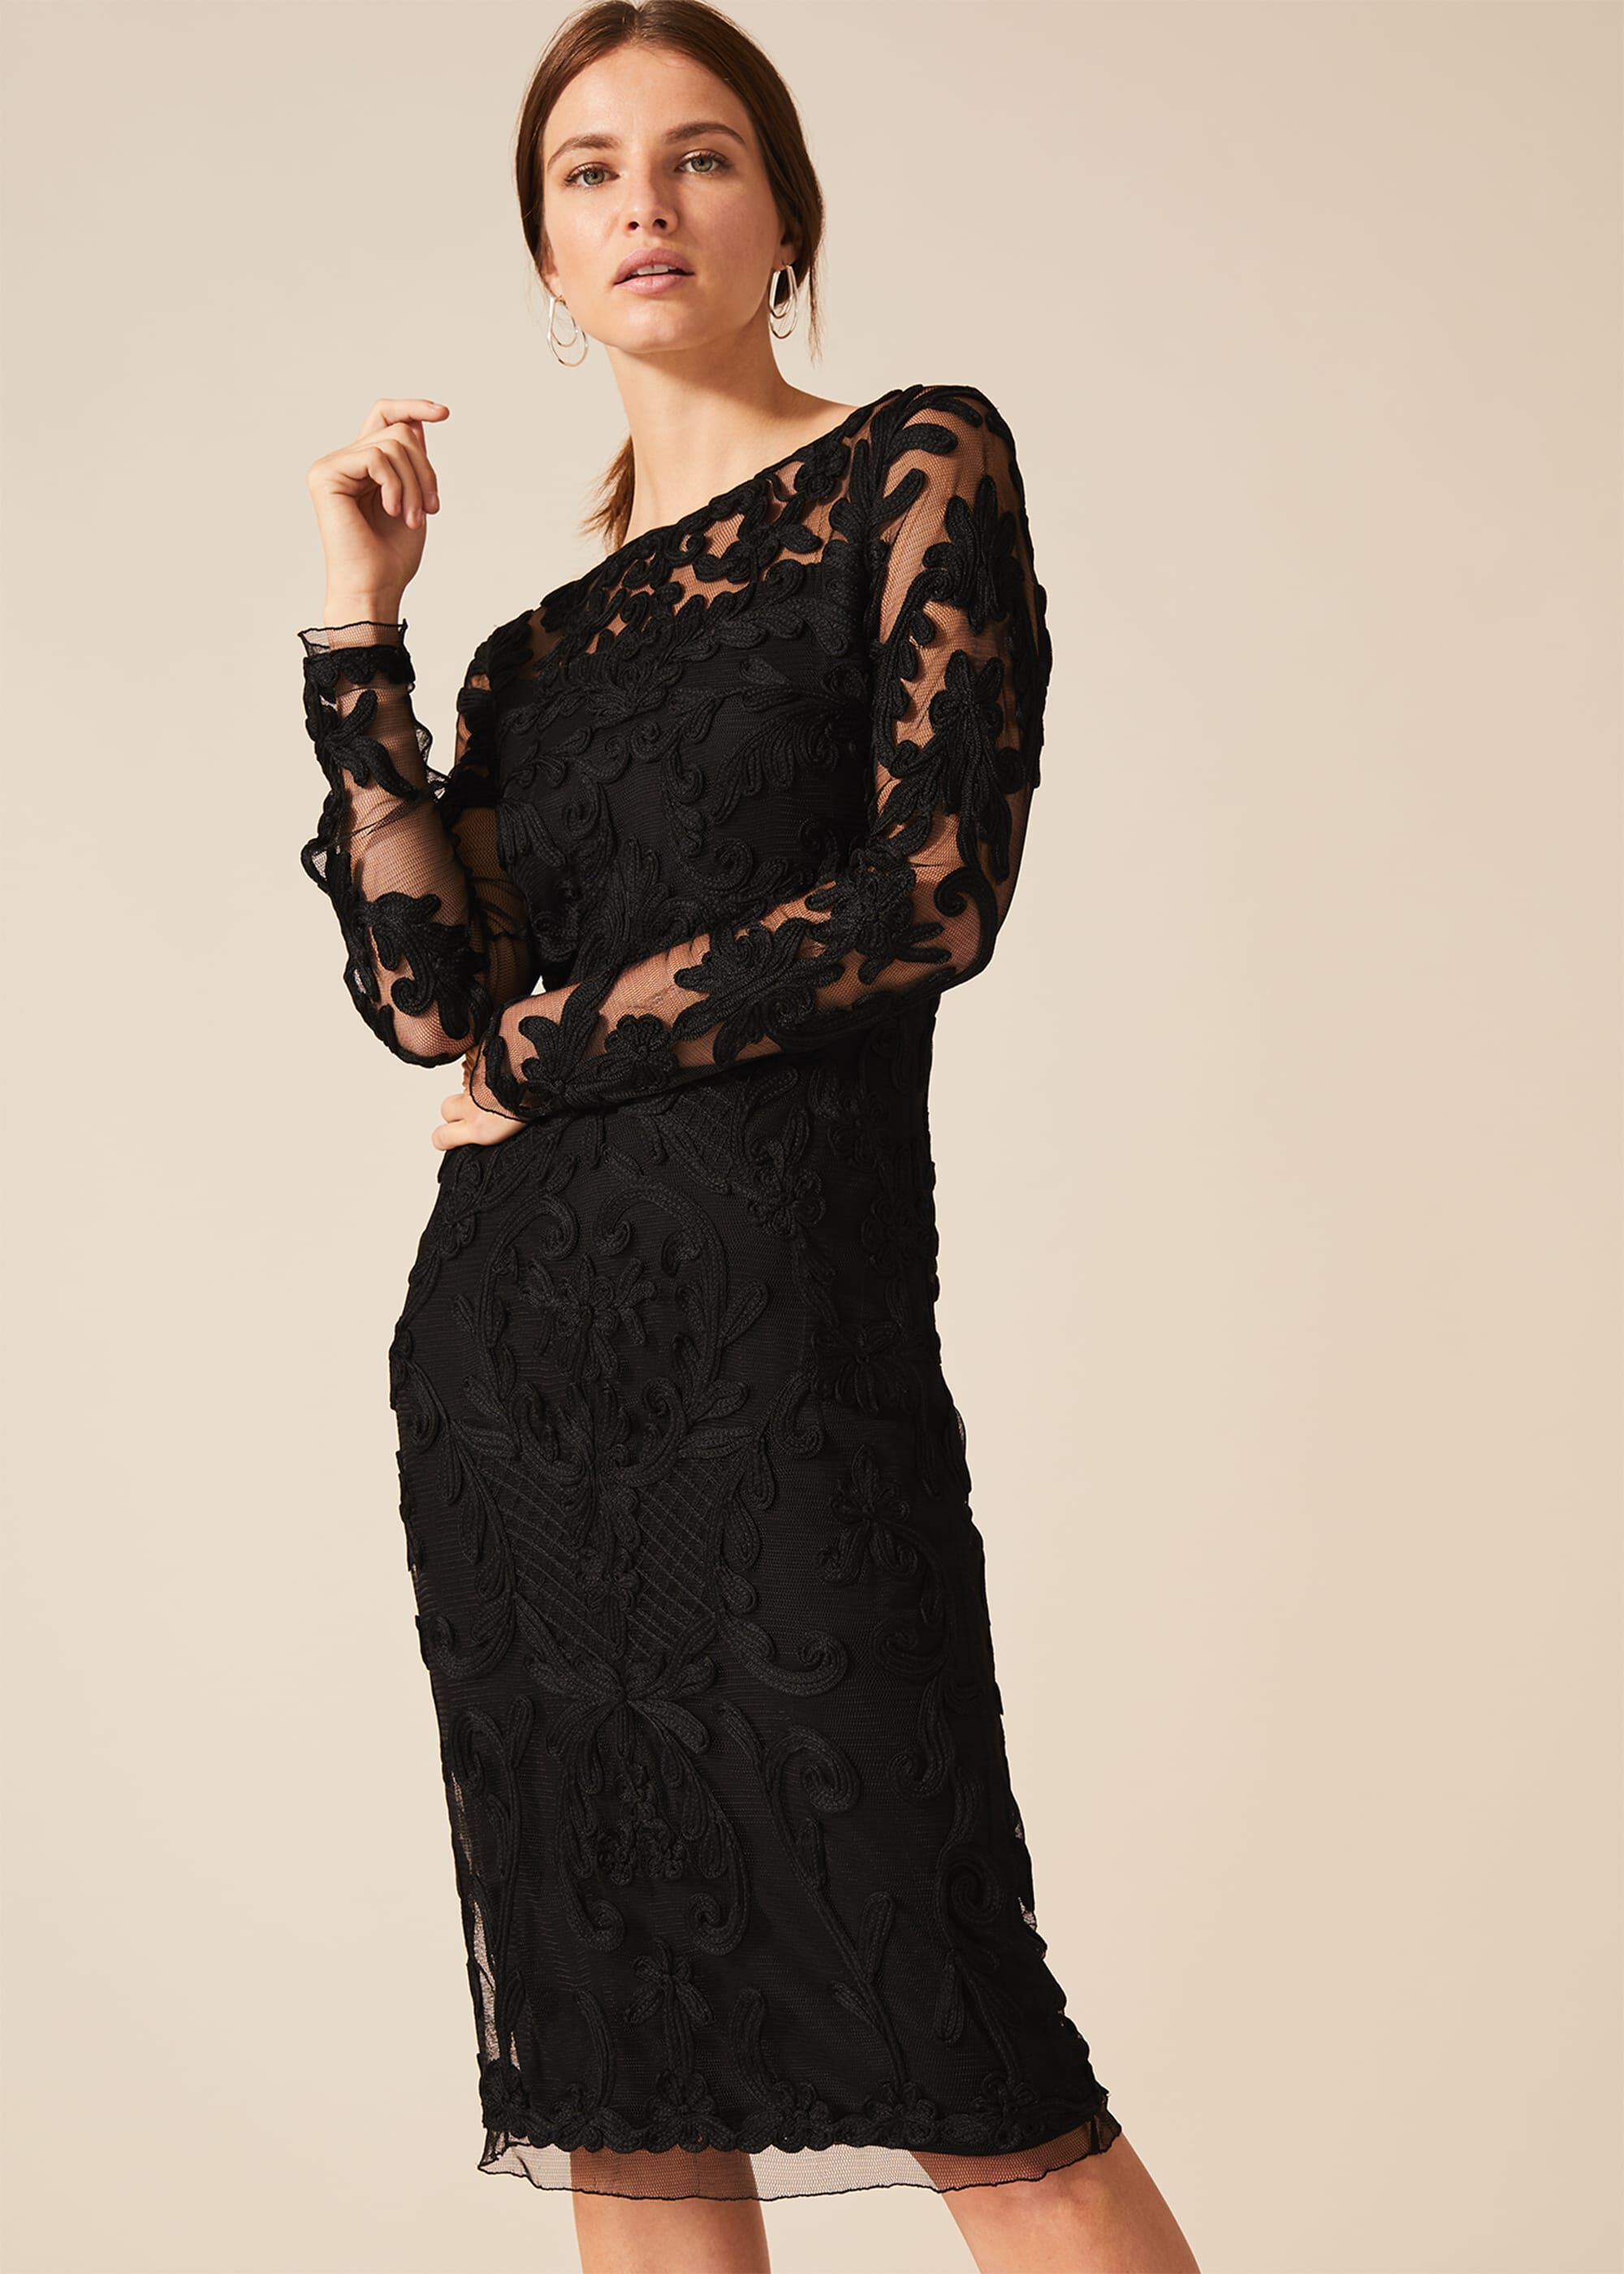 Phase Eight Nikita Tapework Dress, Black, Cocktail, Occasion Dress